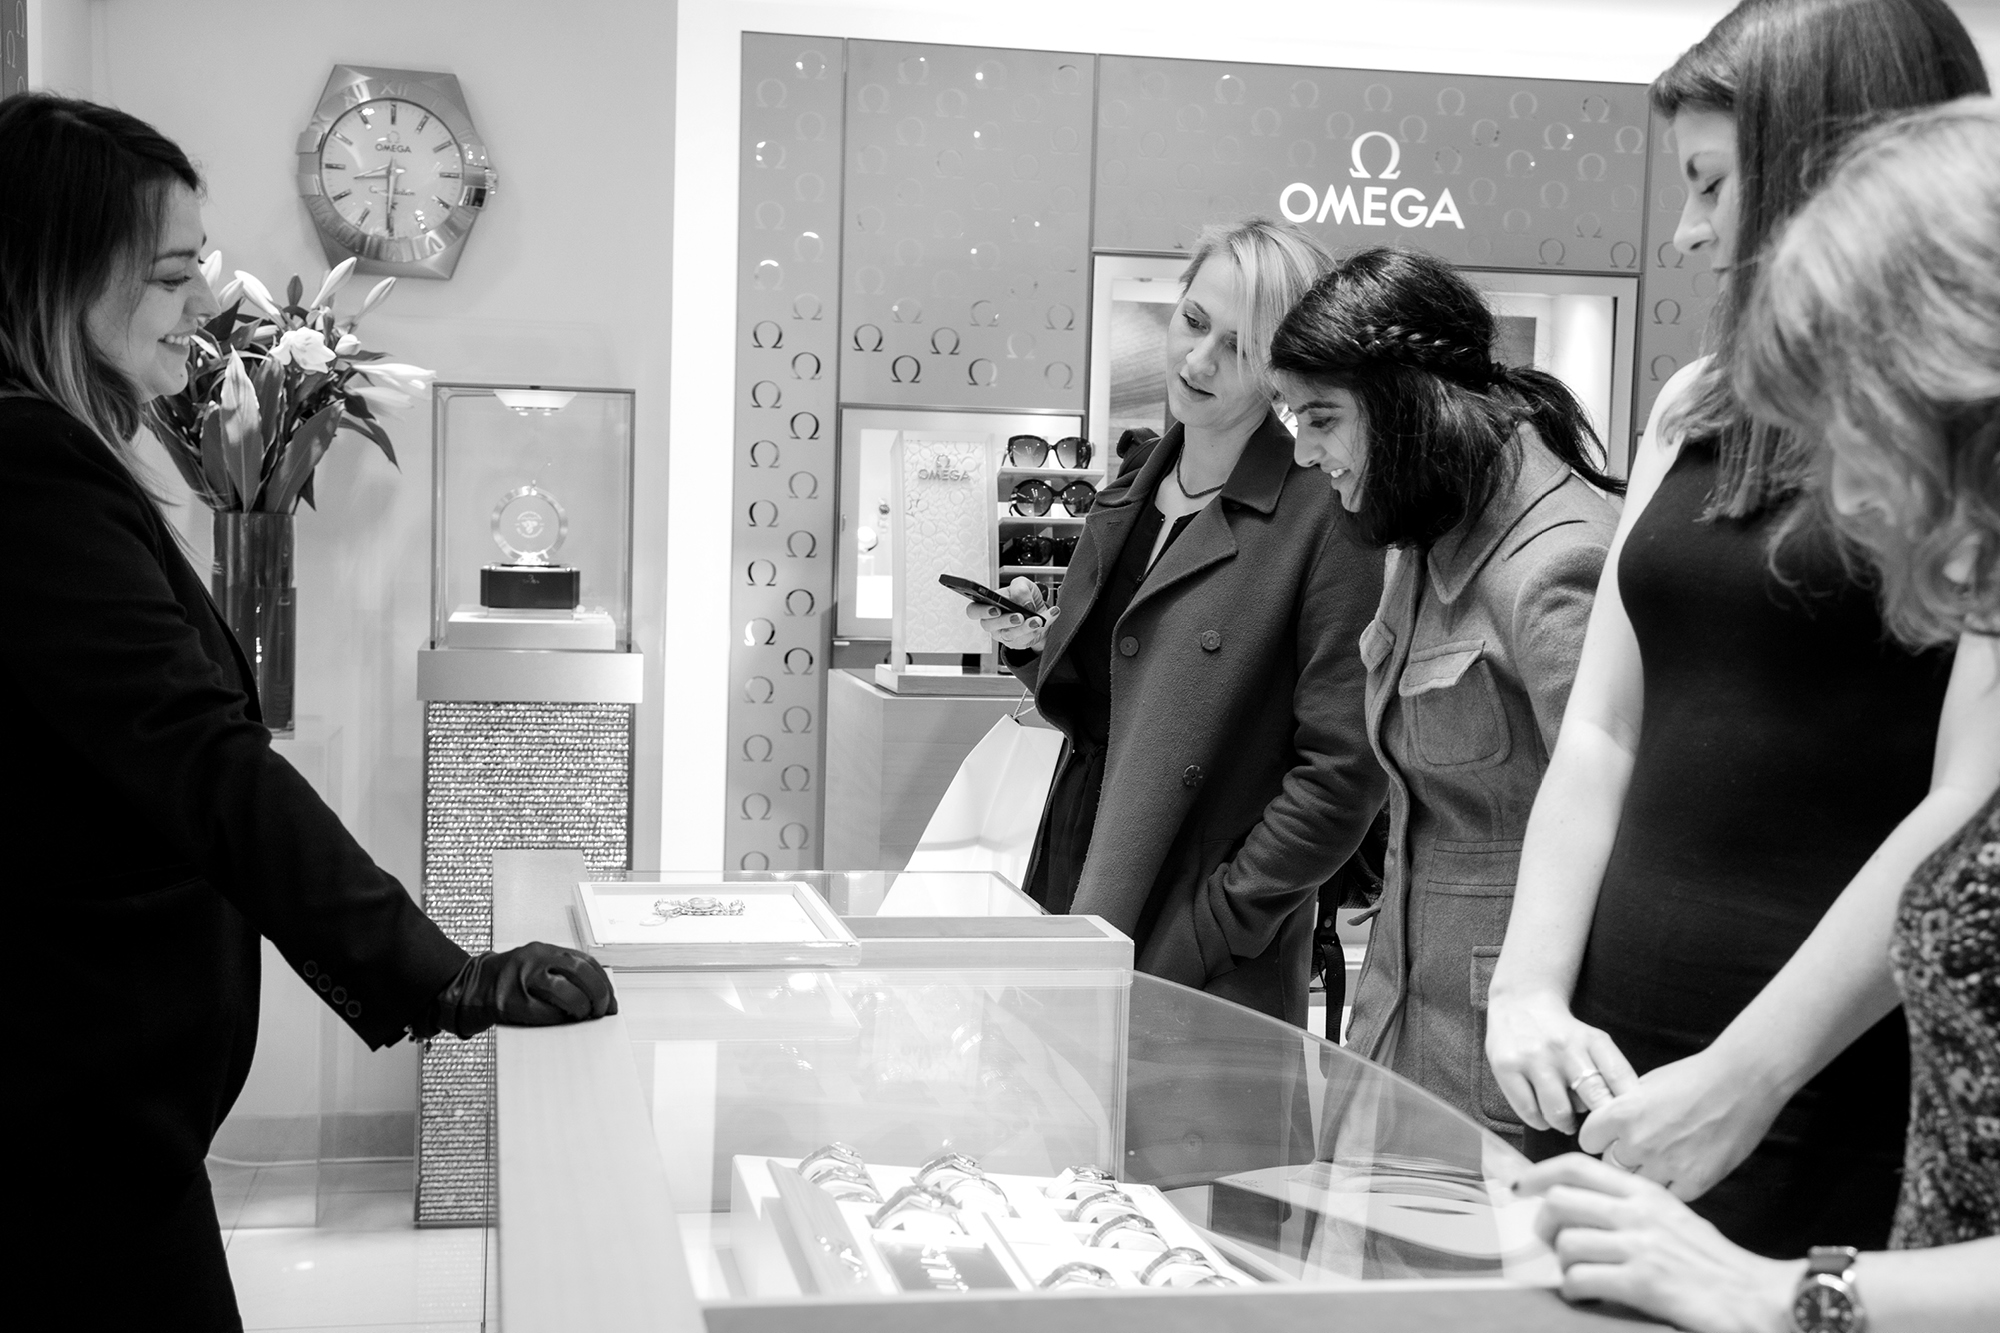 Guests talk to the watch experts at The Royal Exchange's Omega boutique